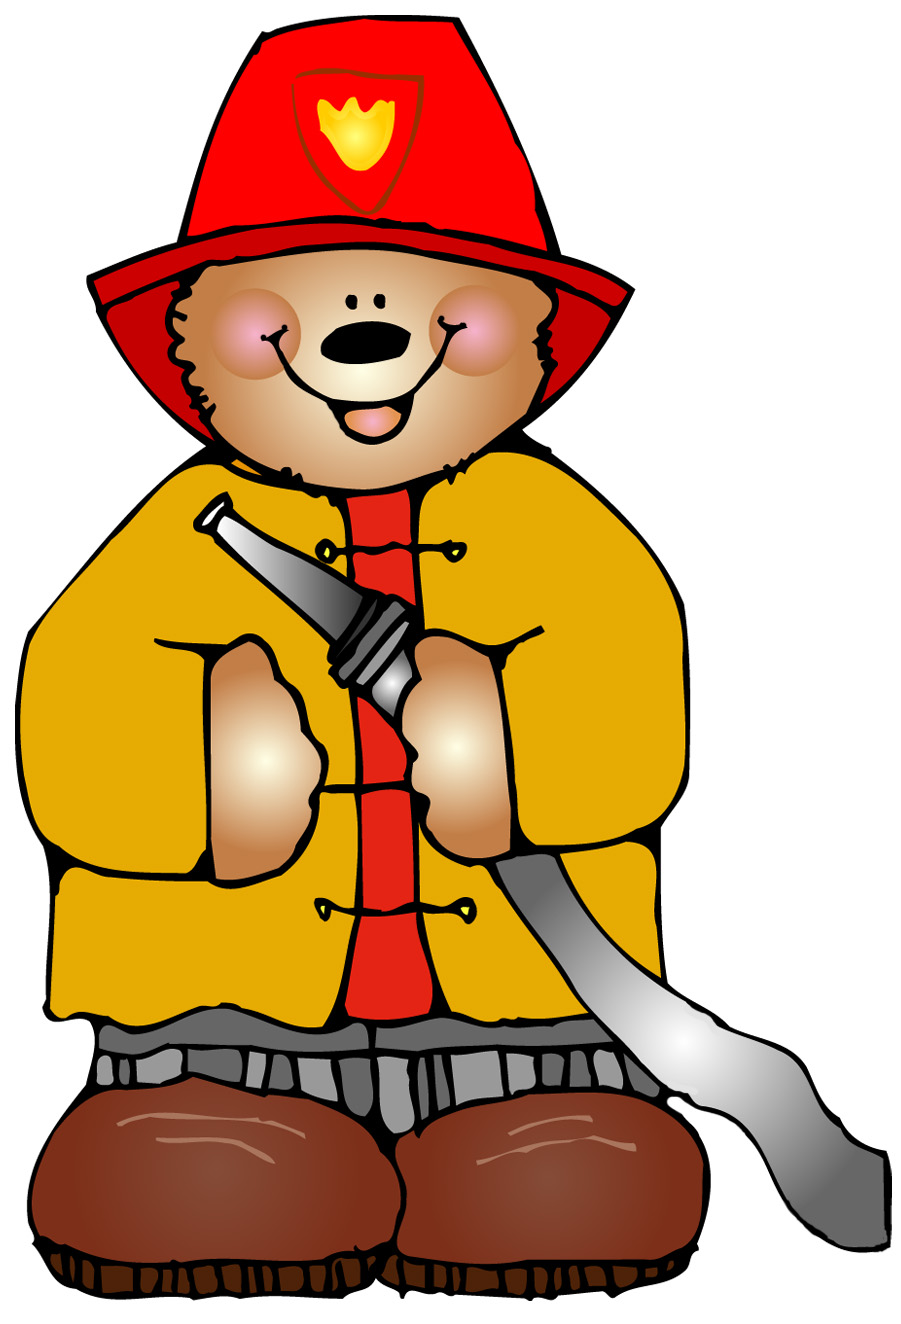 Bear clipart firefighter Week Fire Sunday 9 2011